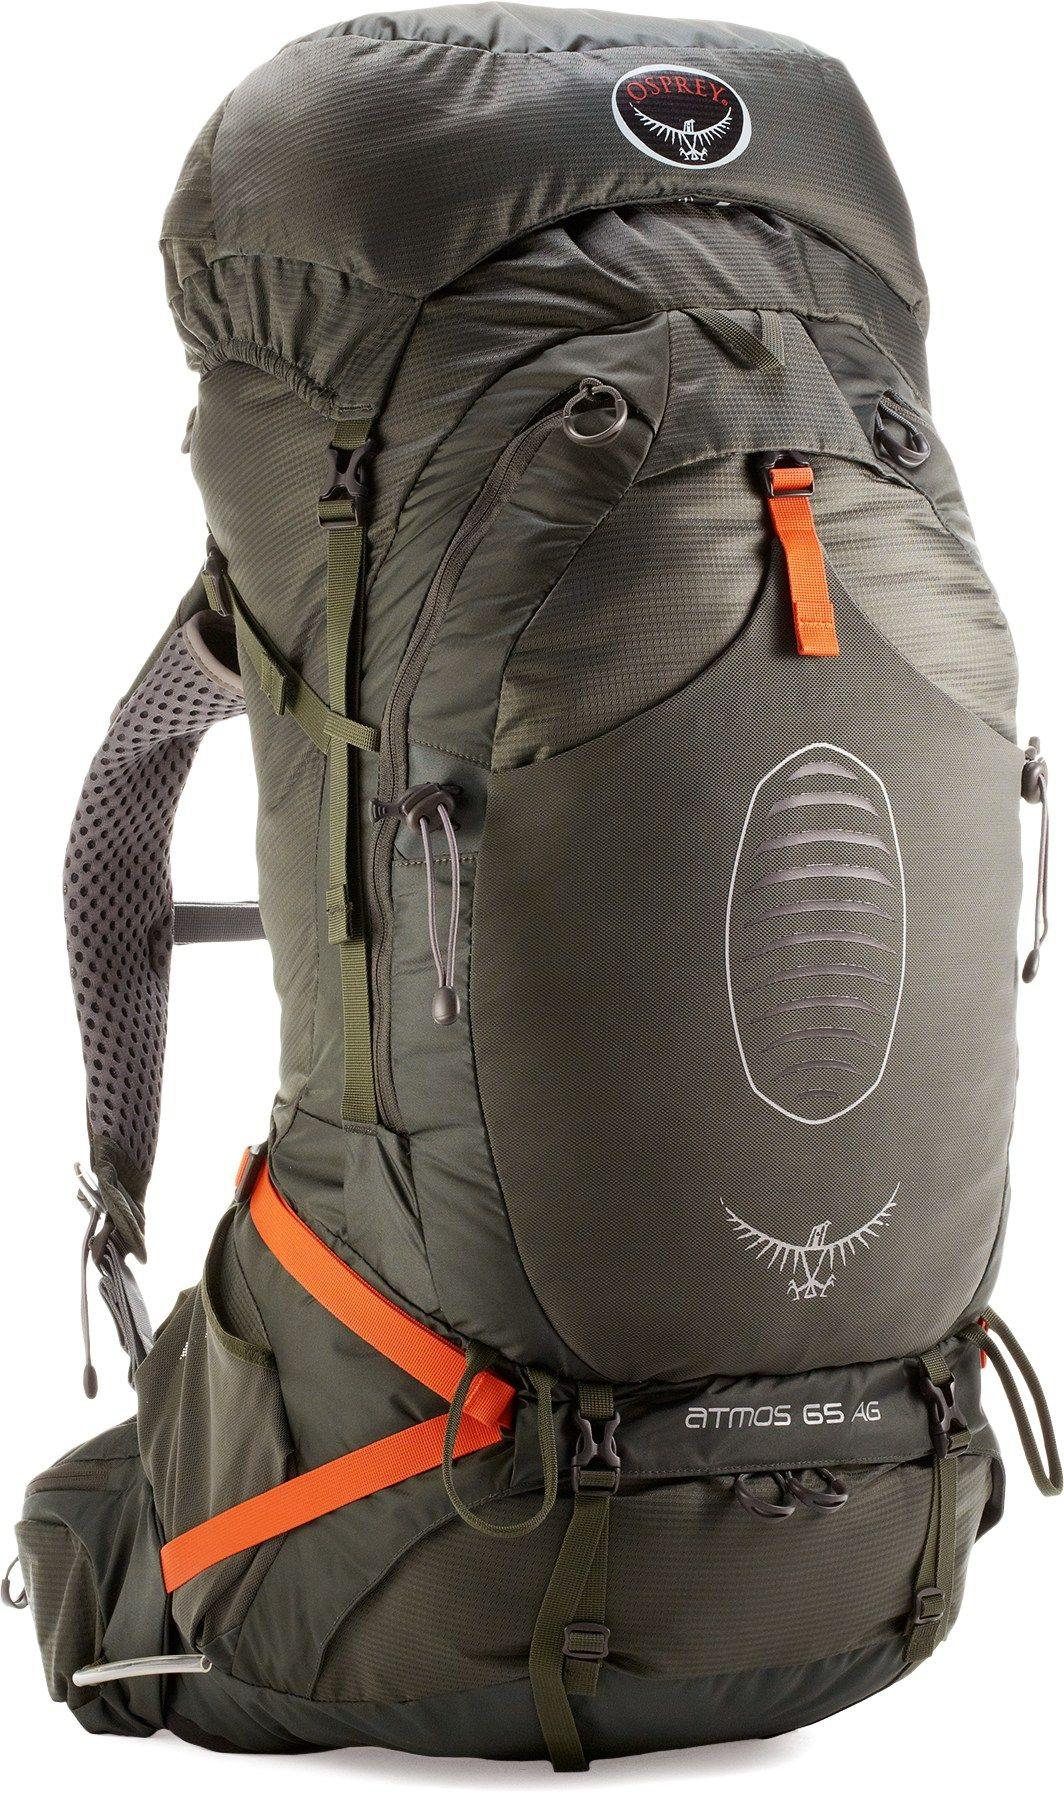 Osprey Atmos 65 AG Pack (Men s) -  259.95 (NOTE  Great backpack but may not  be the best option because it is too large and heavy for ultralight  backpacking. 42842c8b6d